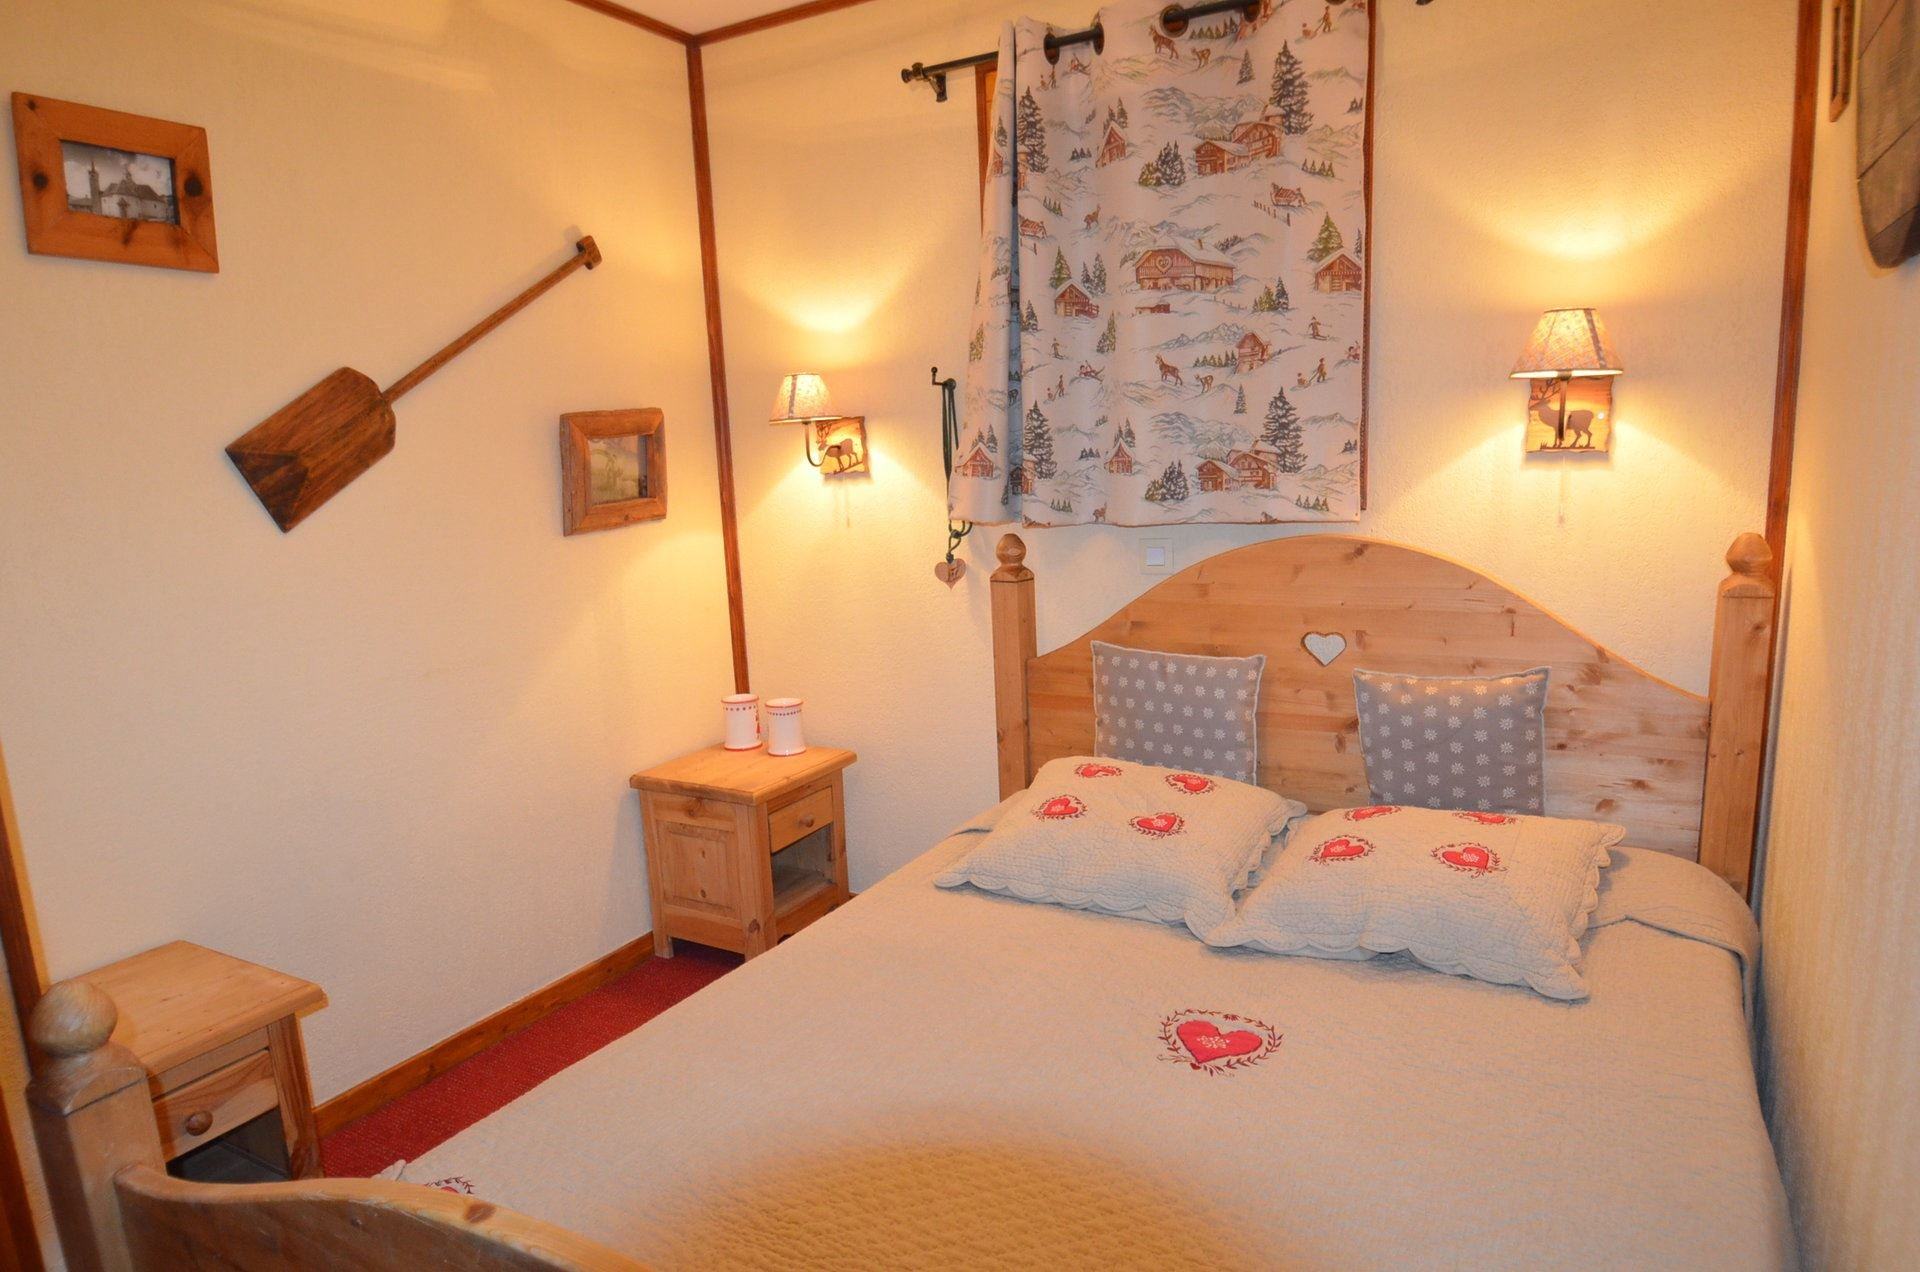 2 Rooms 4 Pers ski-in ski-out / VALMONT 1010